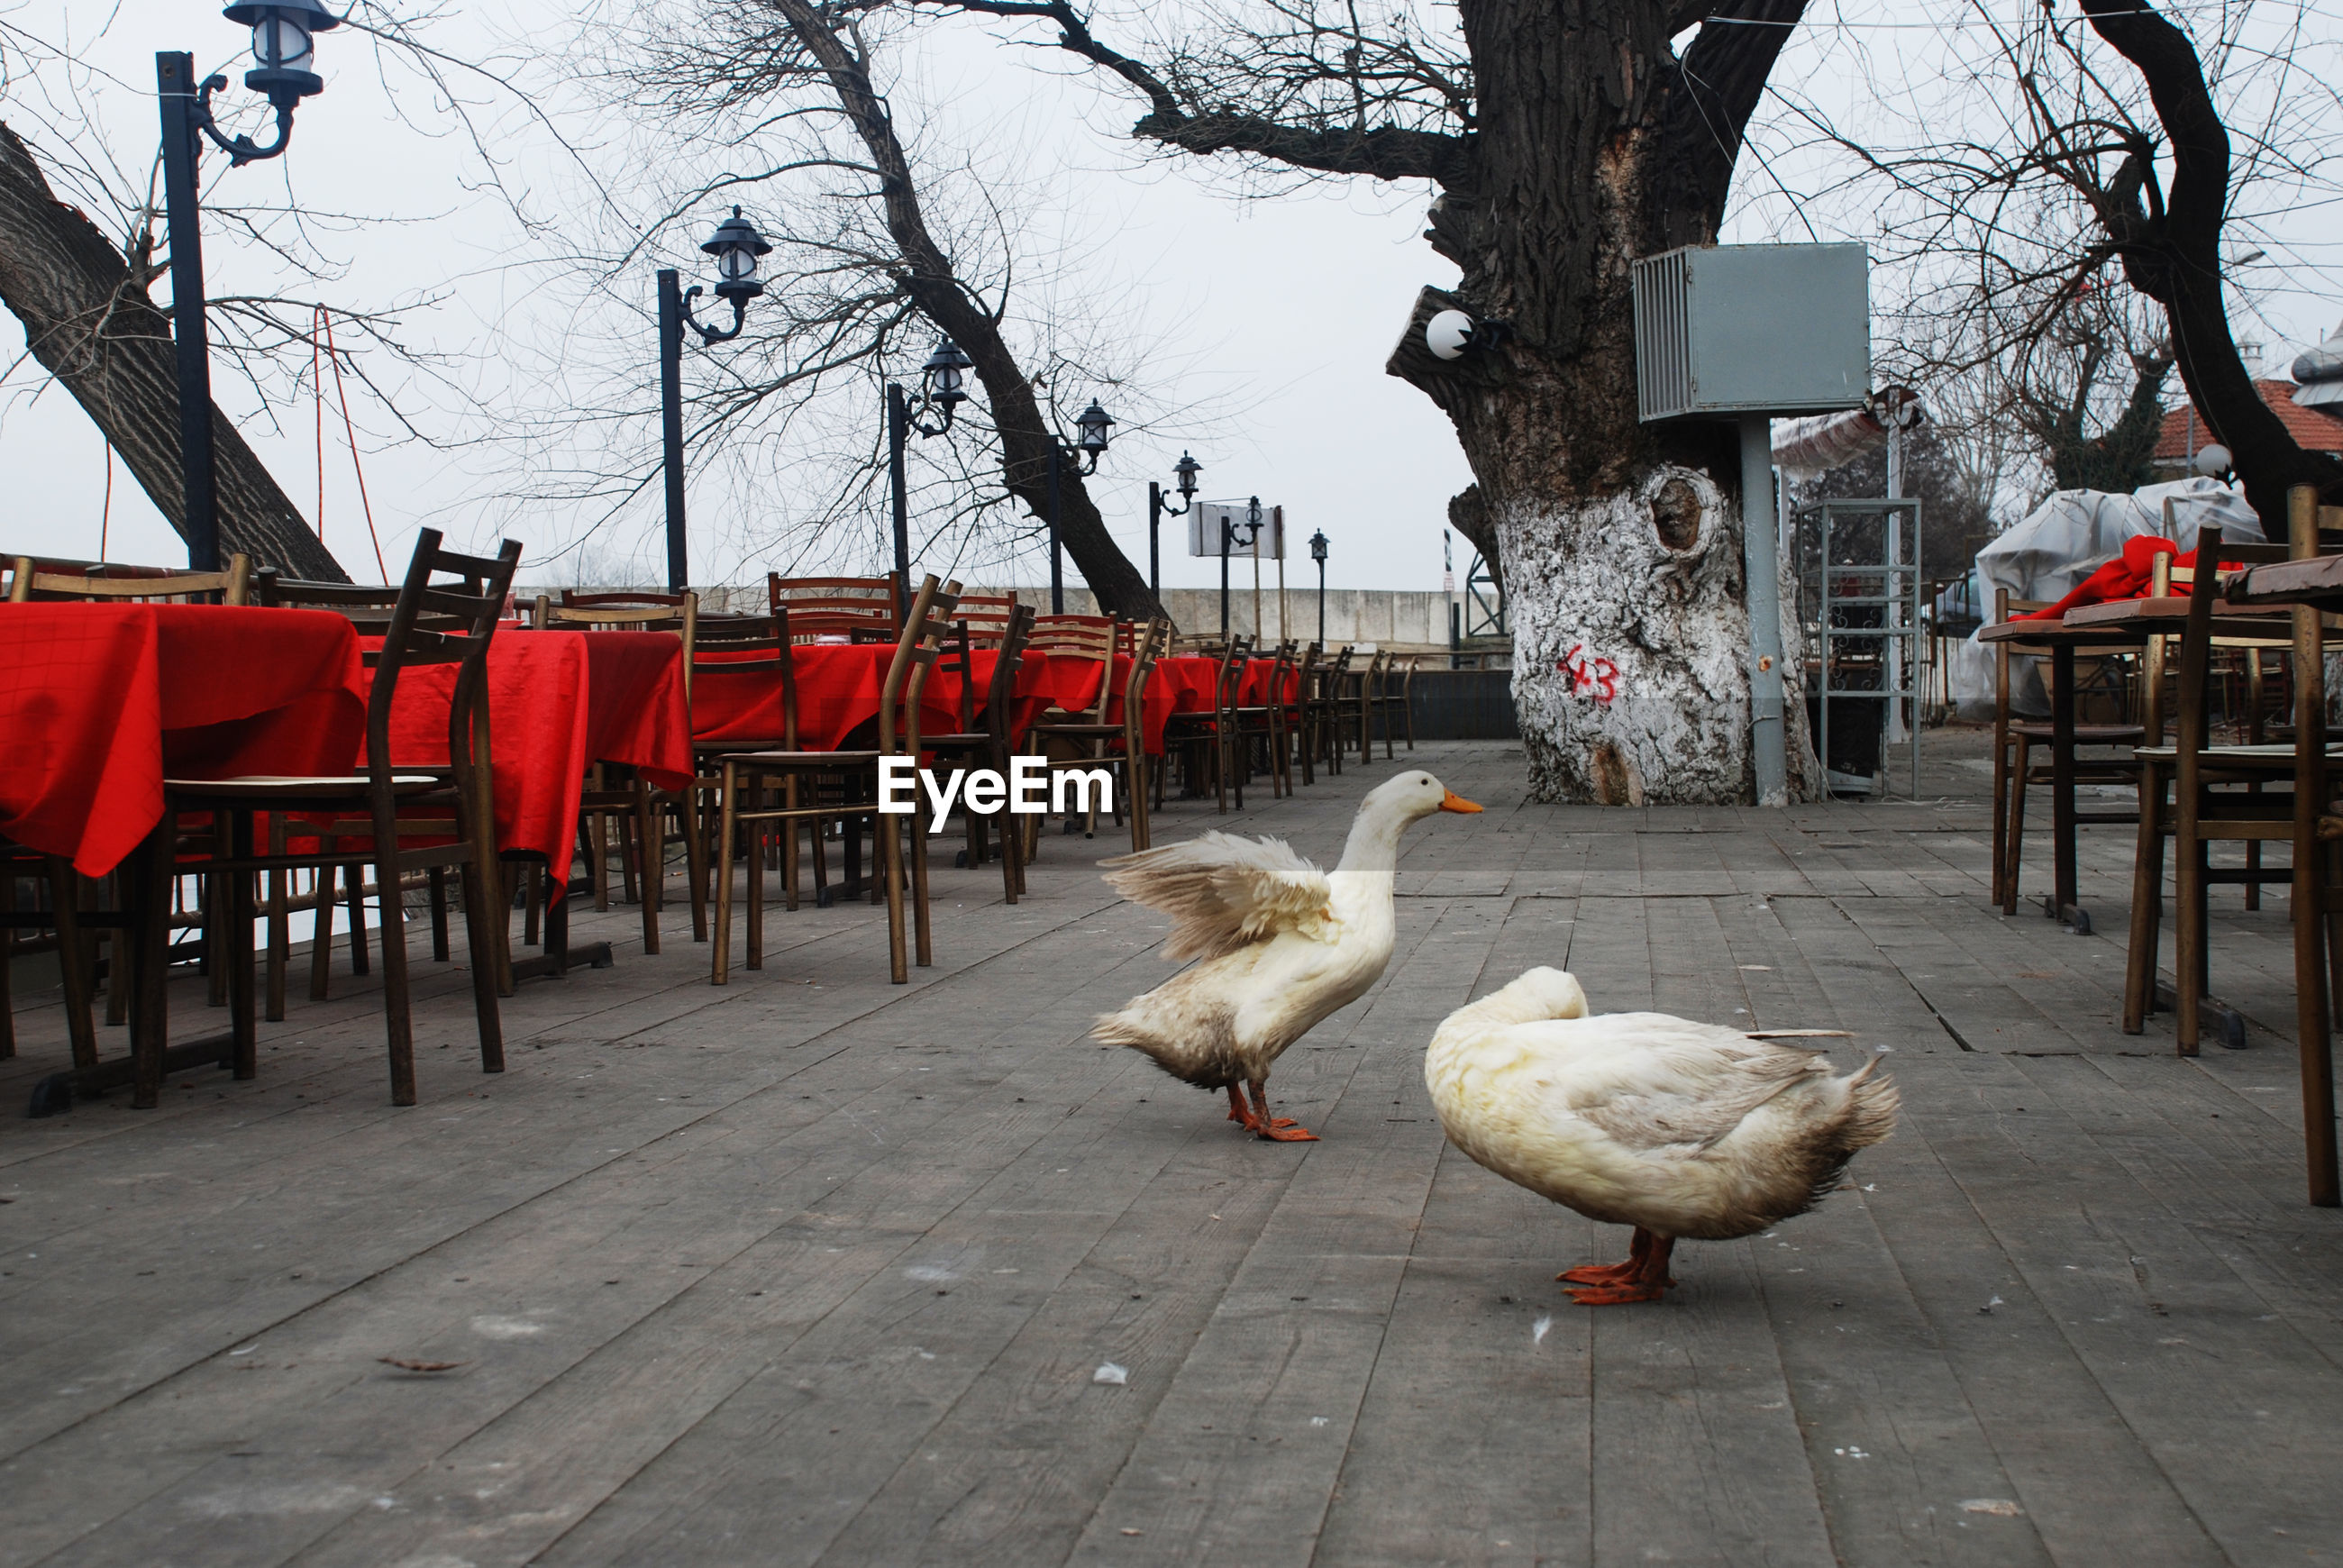 Geese by empty chairs at cafe